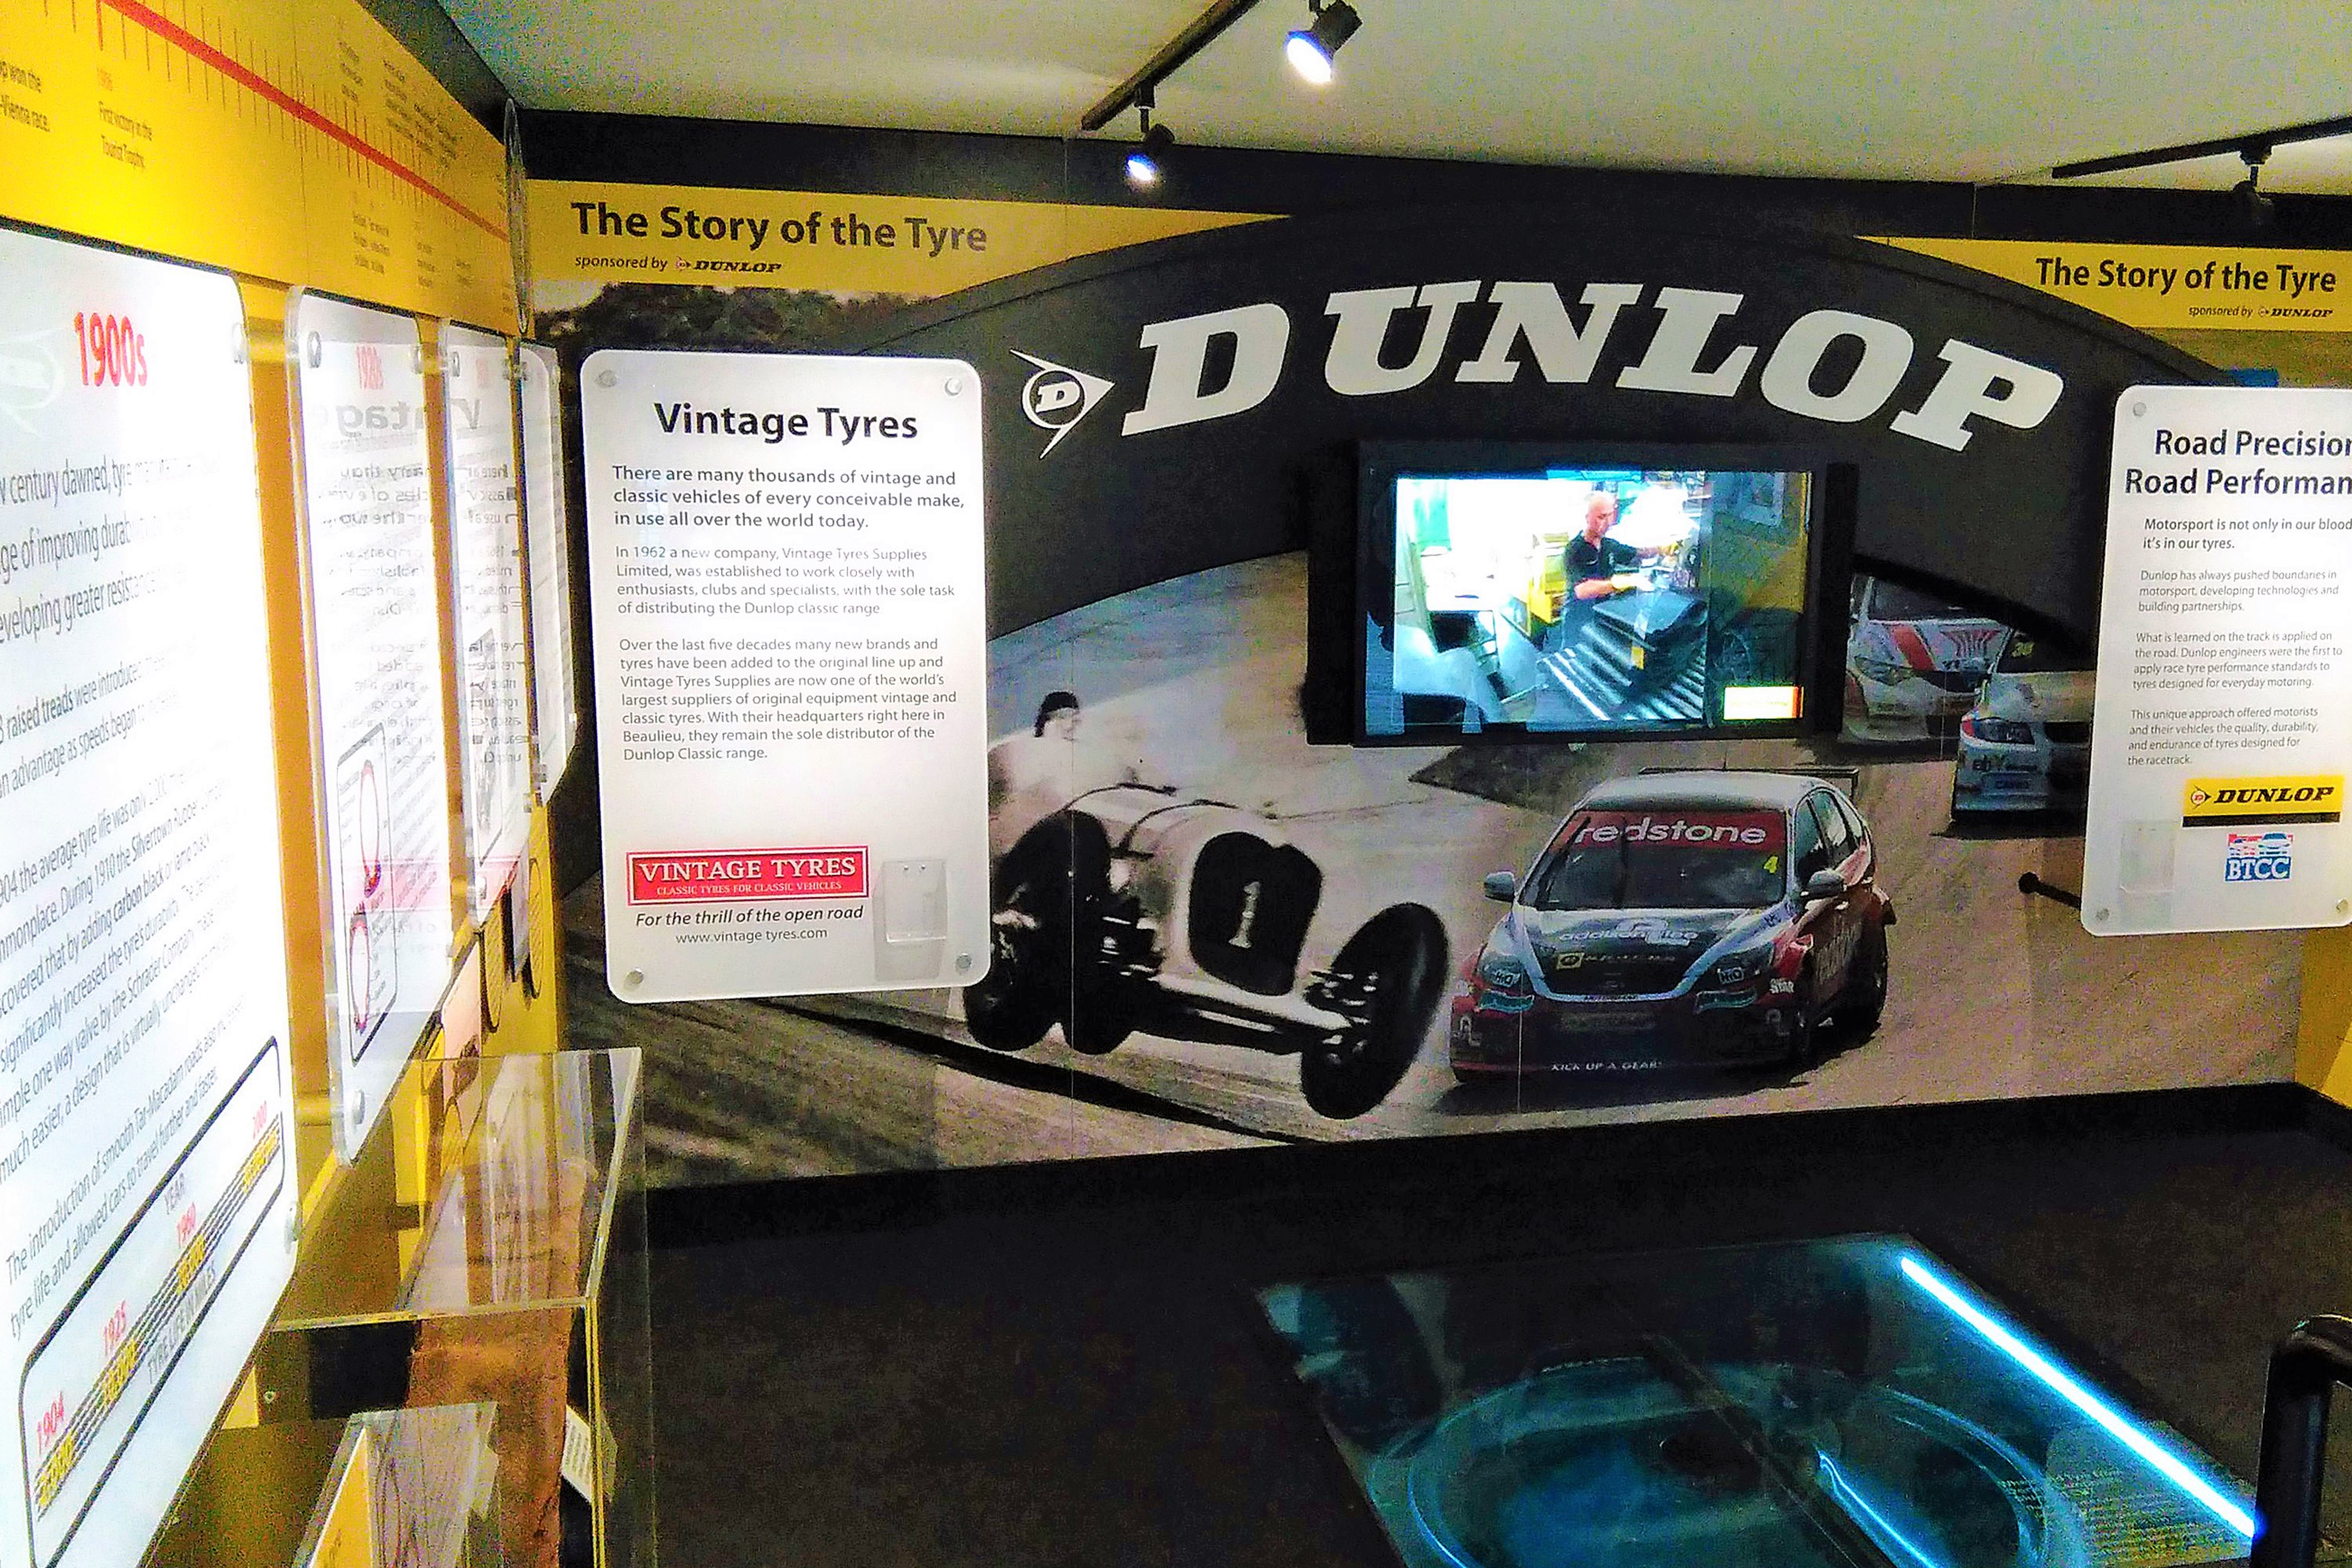 The Dunlop display booth at the National Motor Museum